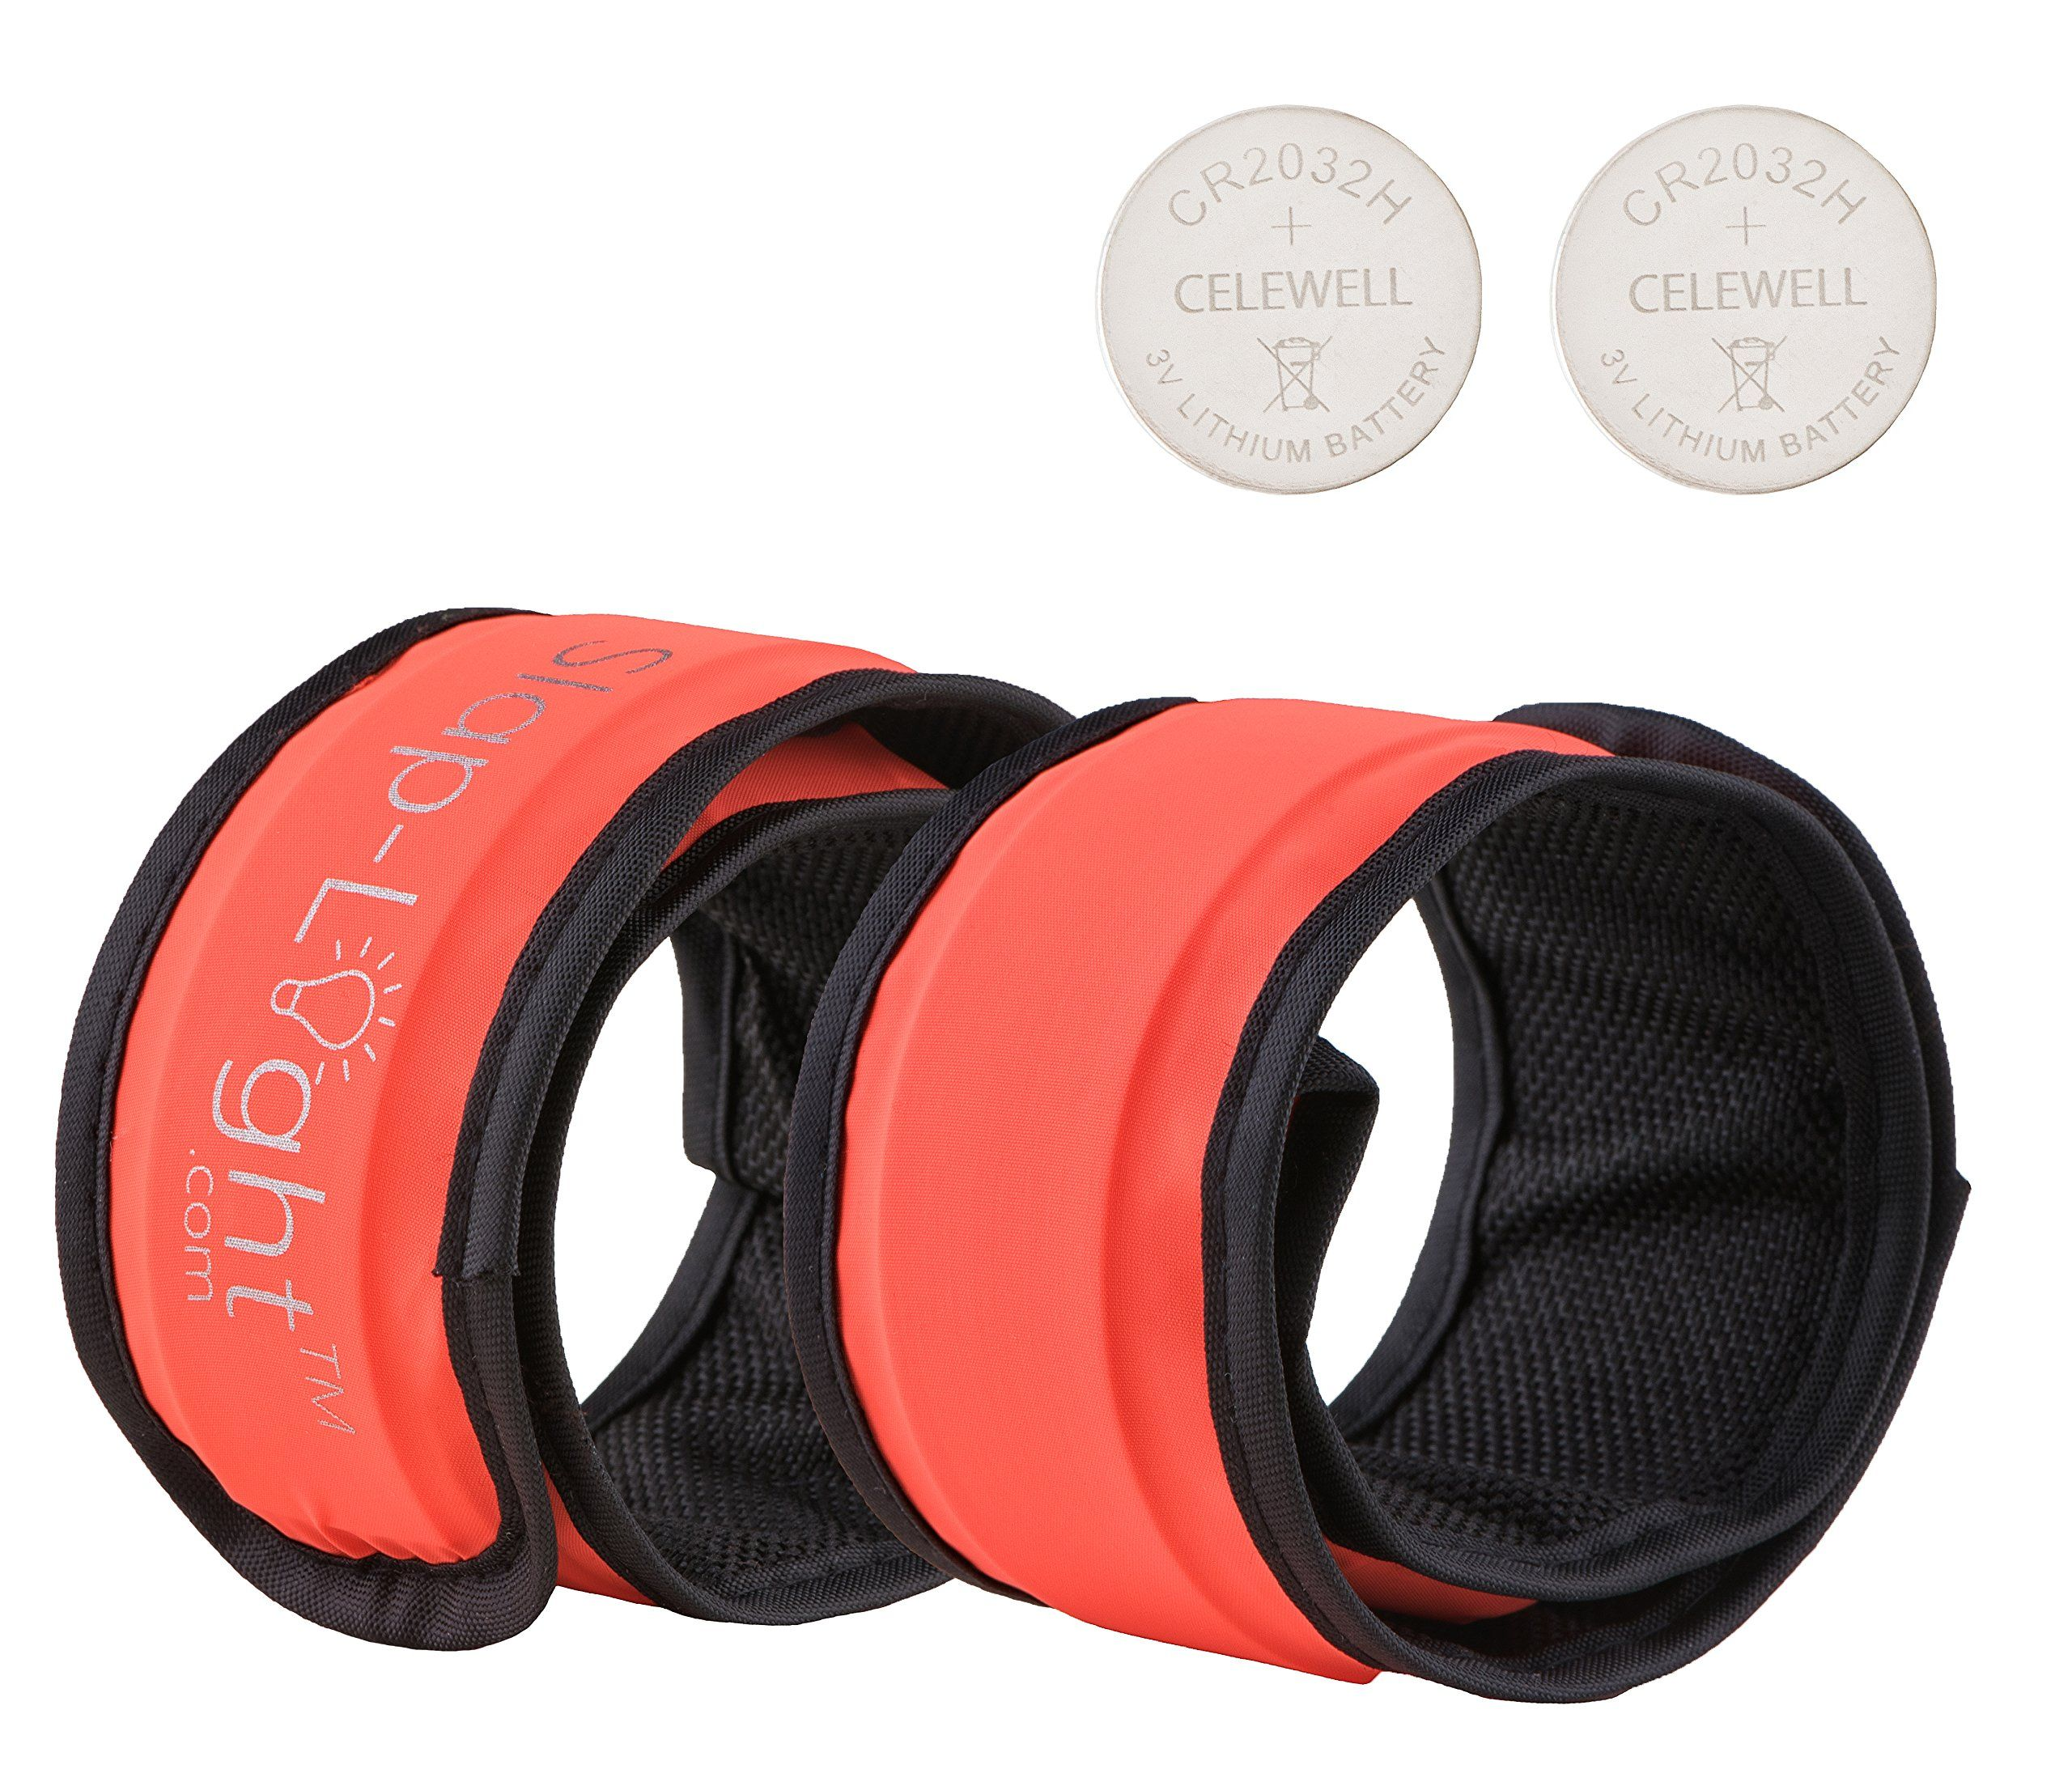 2 x LED Slap Bands with 2 spare batteries / Armbands